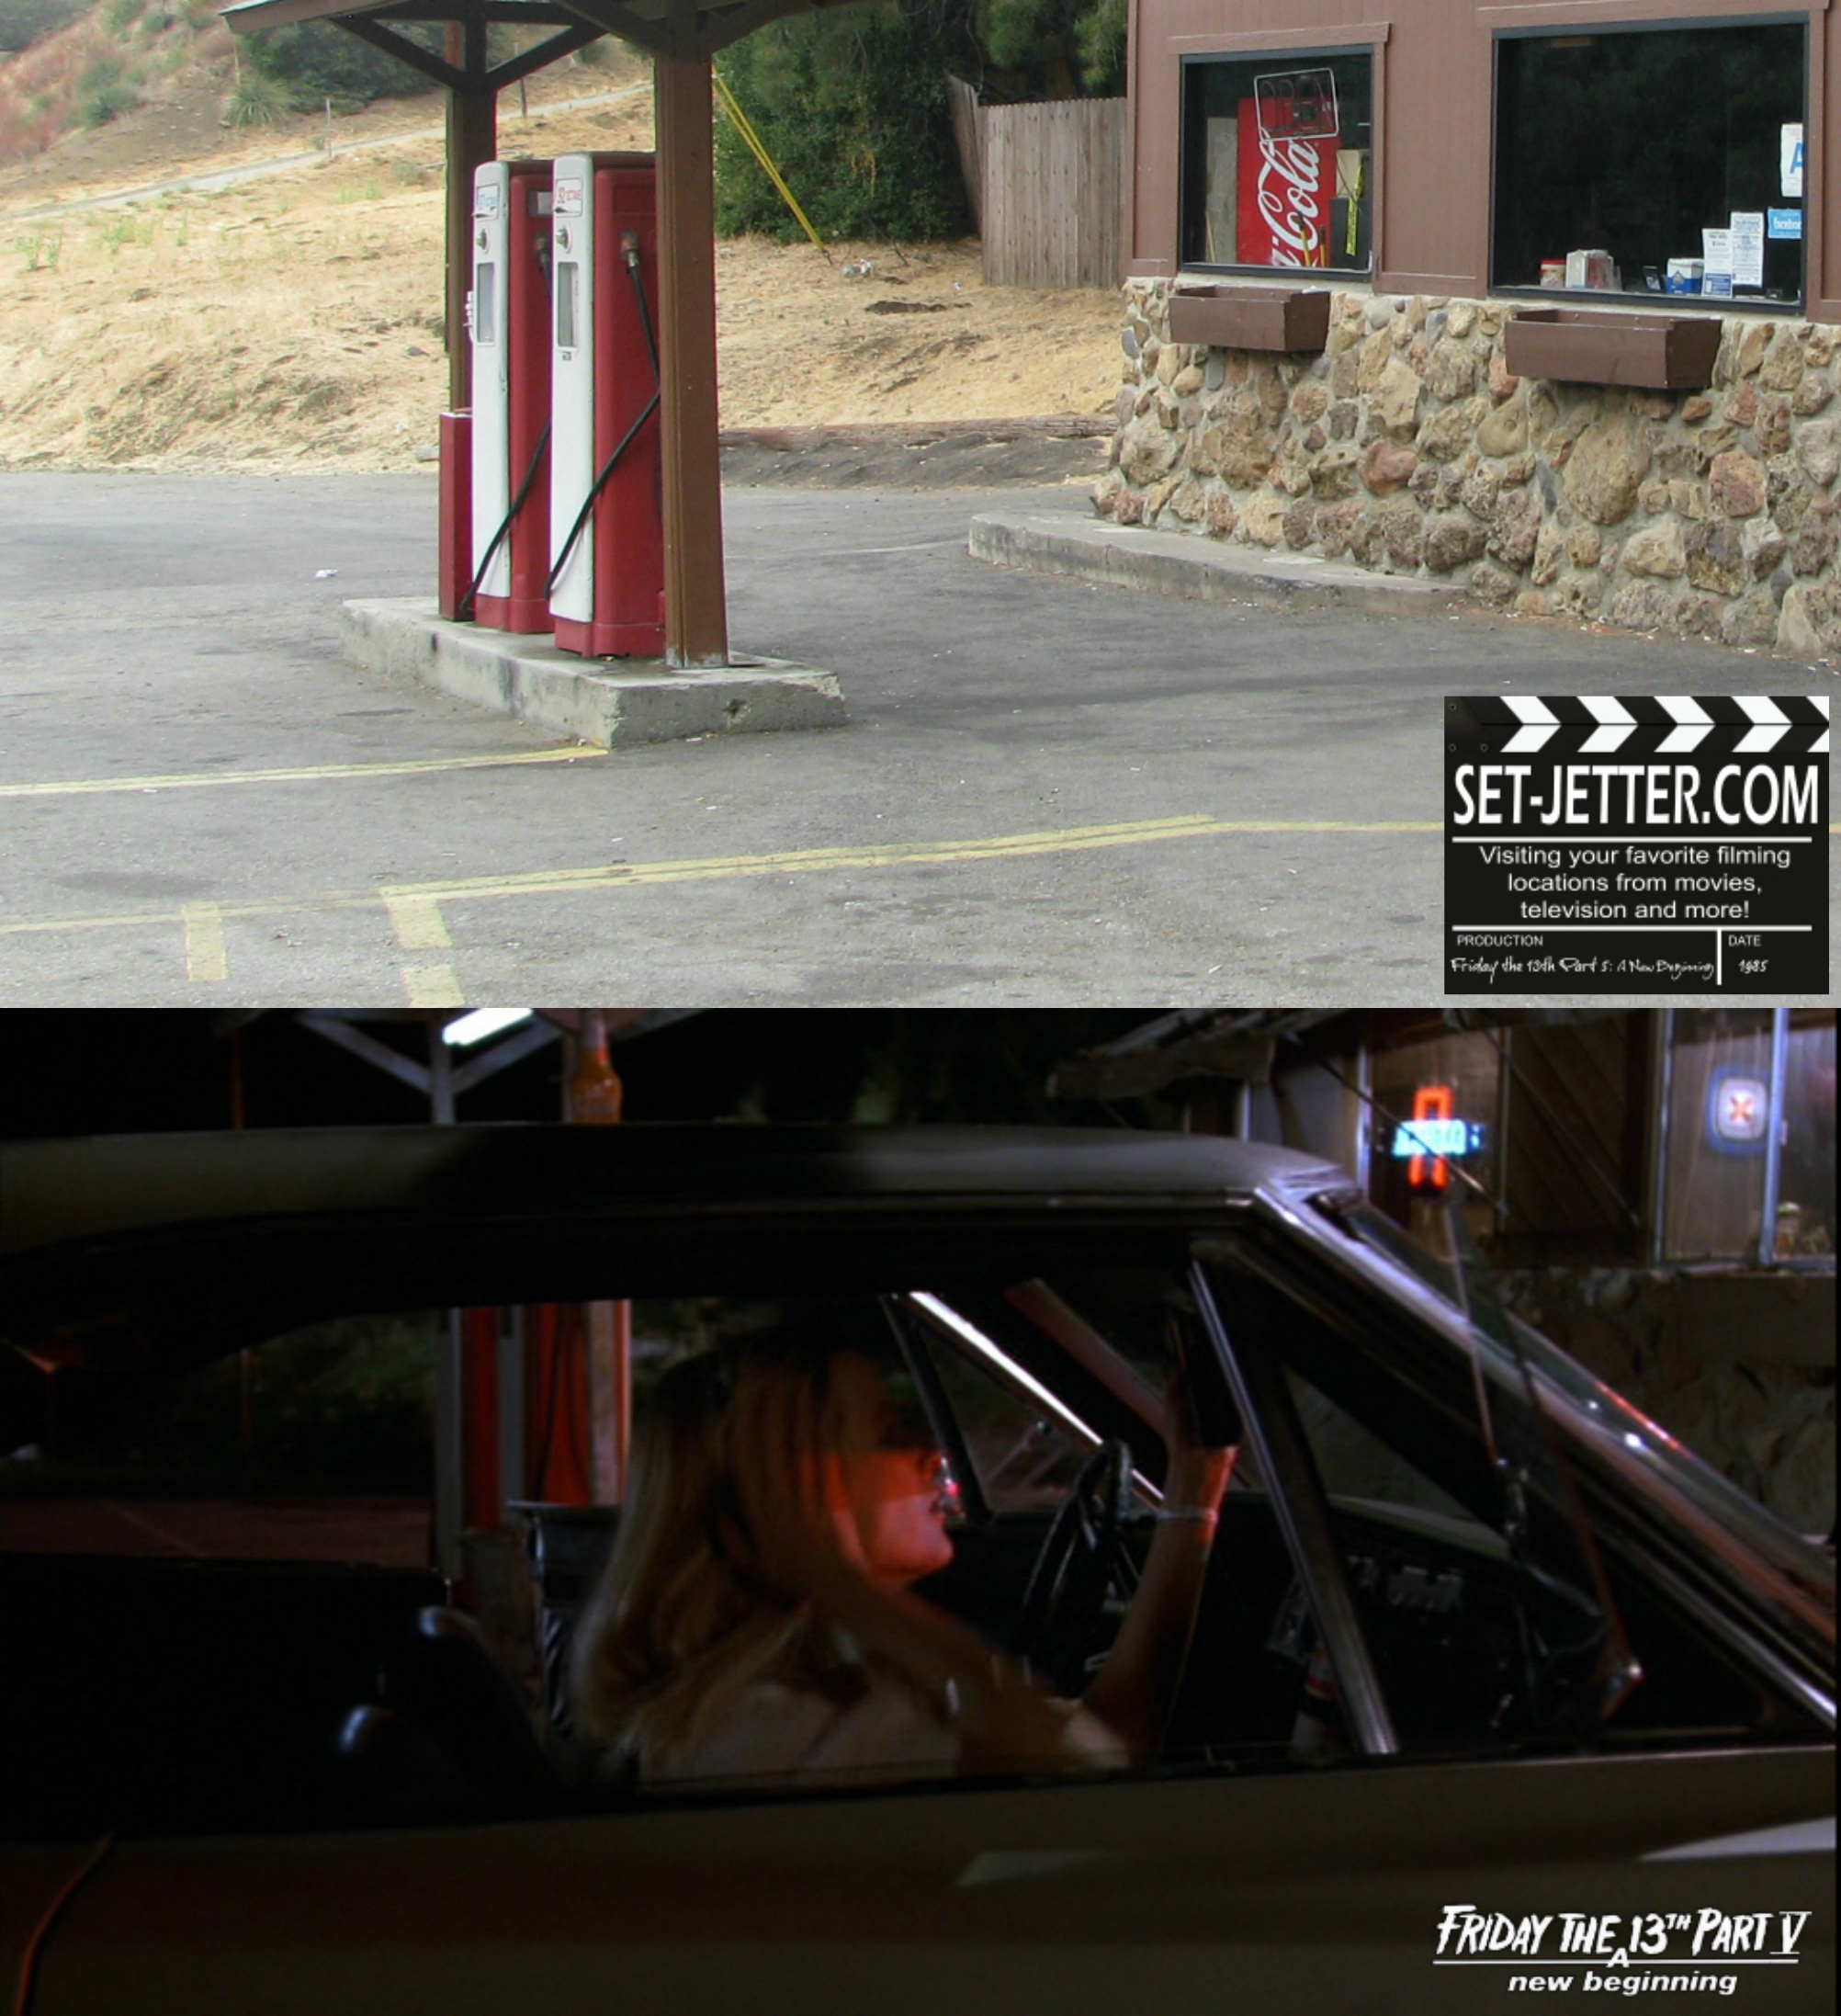 Friday the 13th Part V comparison 20.jpg